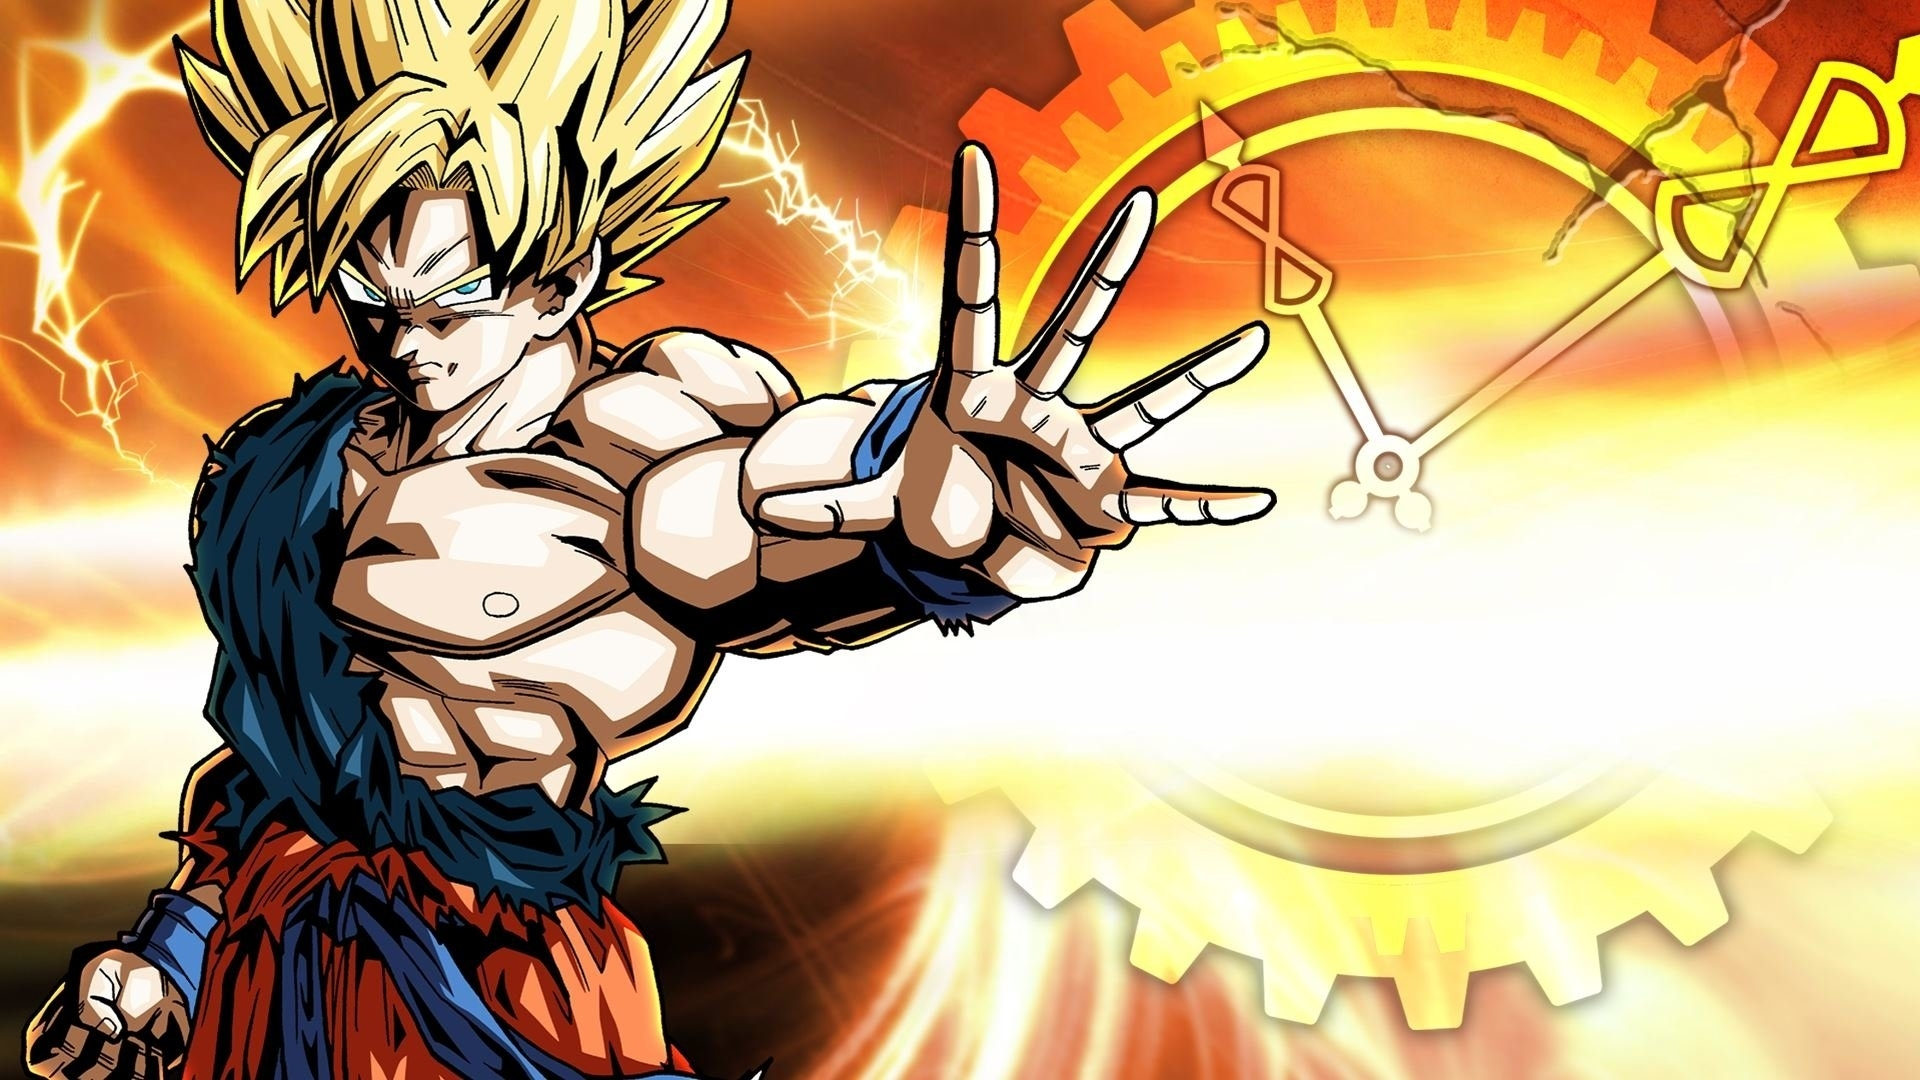 6 dragon ball: xenoverse hd wallpapers | background images